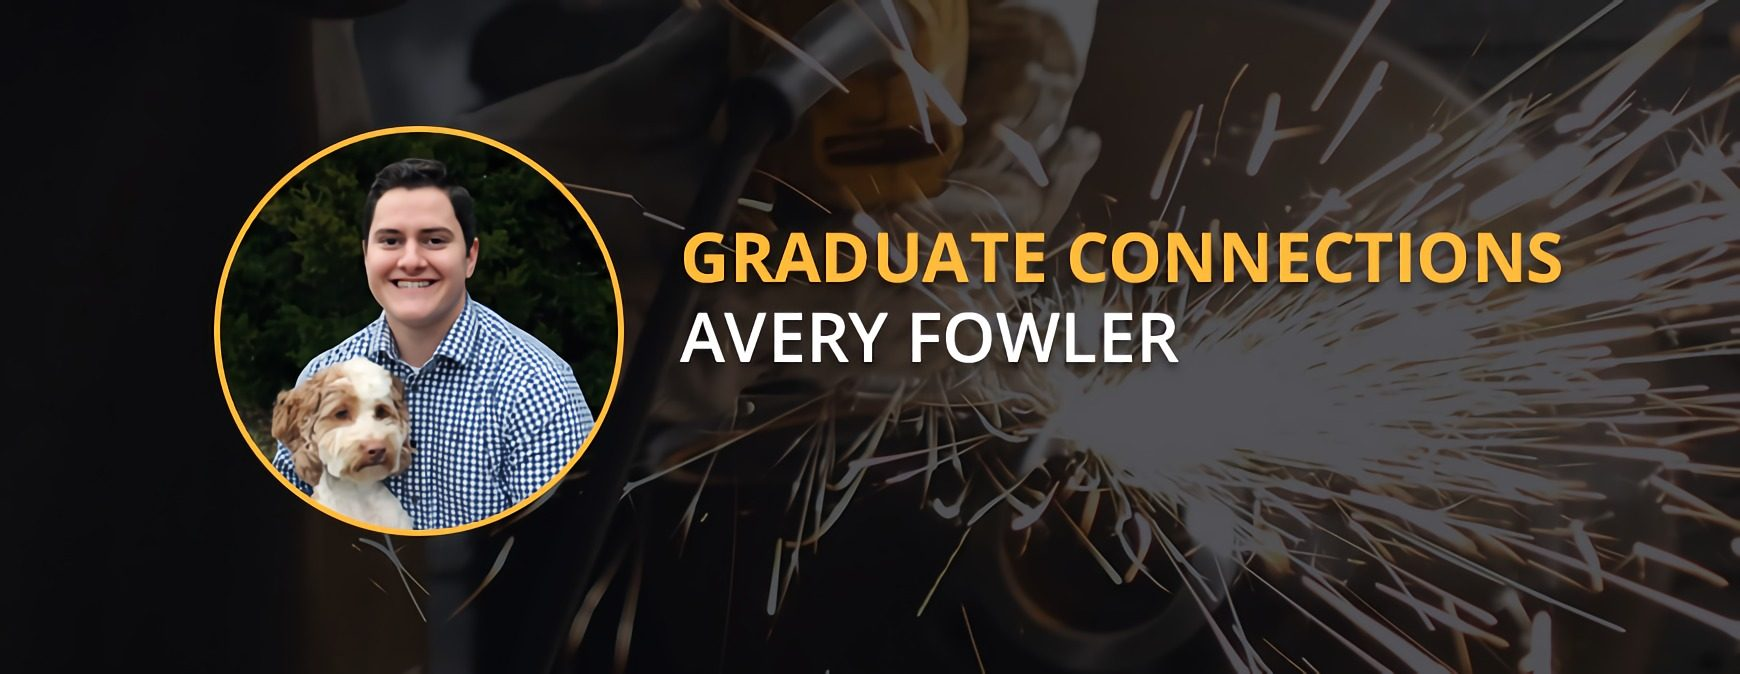 Avery Fowler Graduate Connections